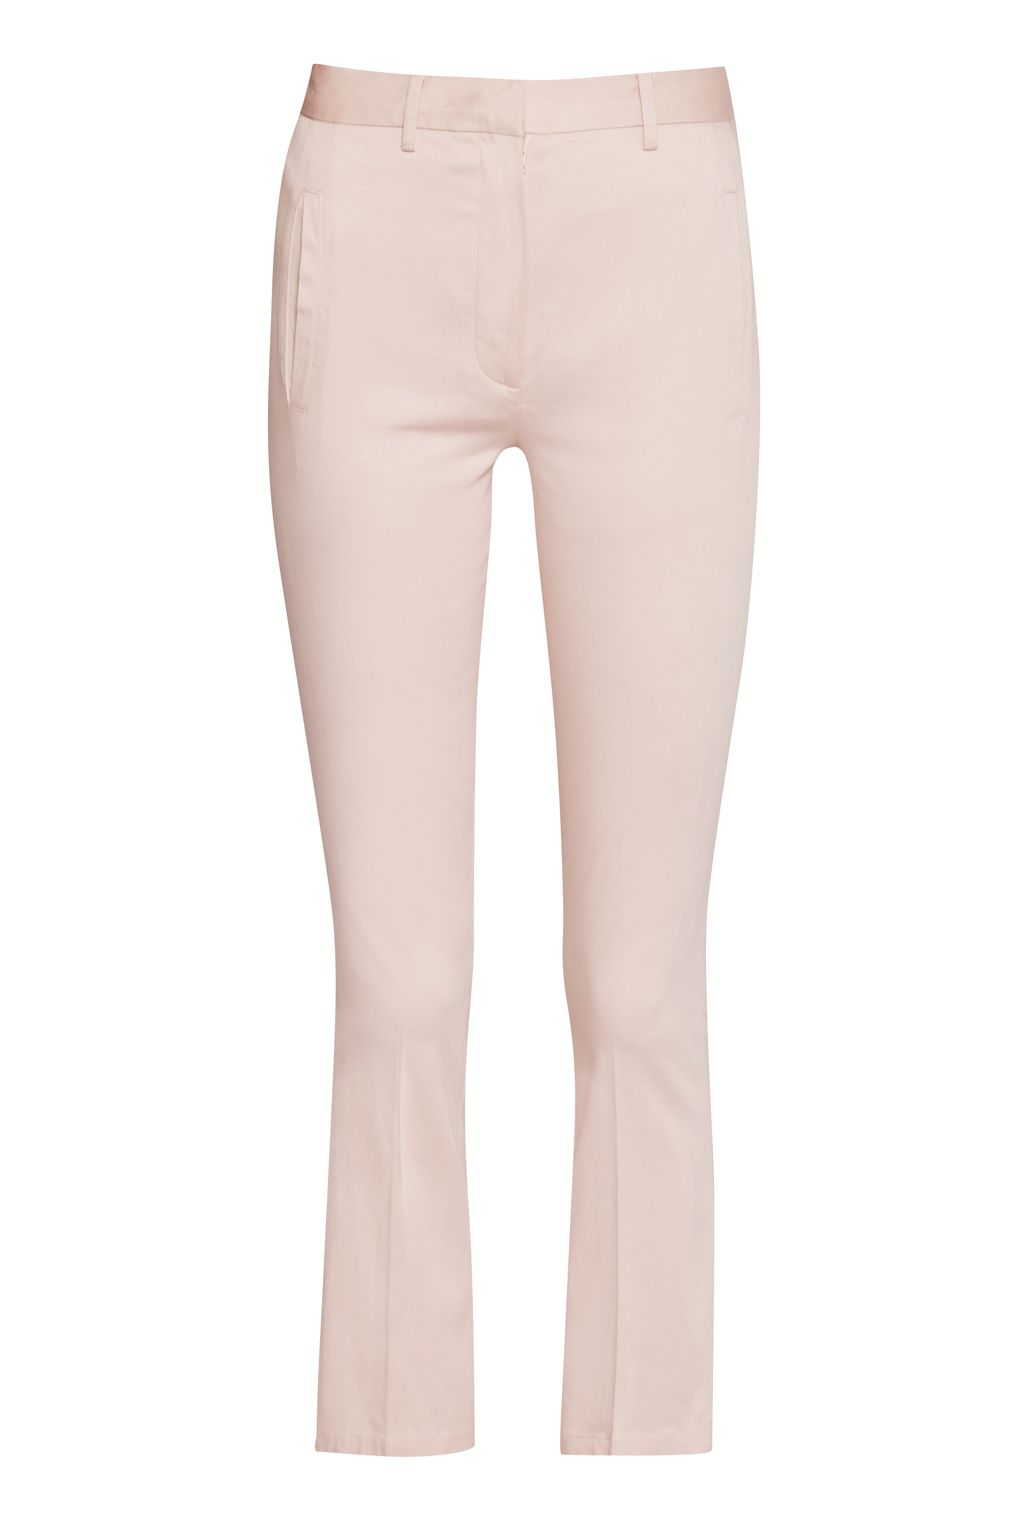 Great Plains Suki Stretch Crop Flared Trousers, Pink